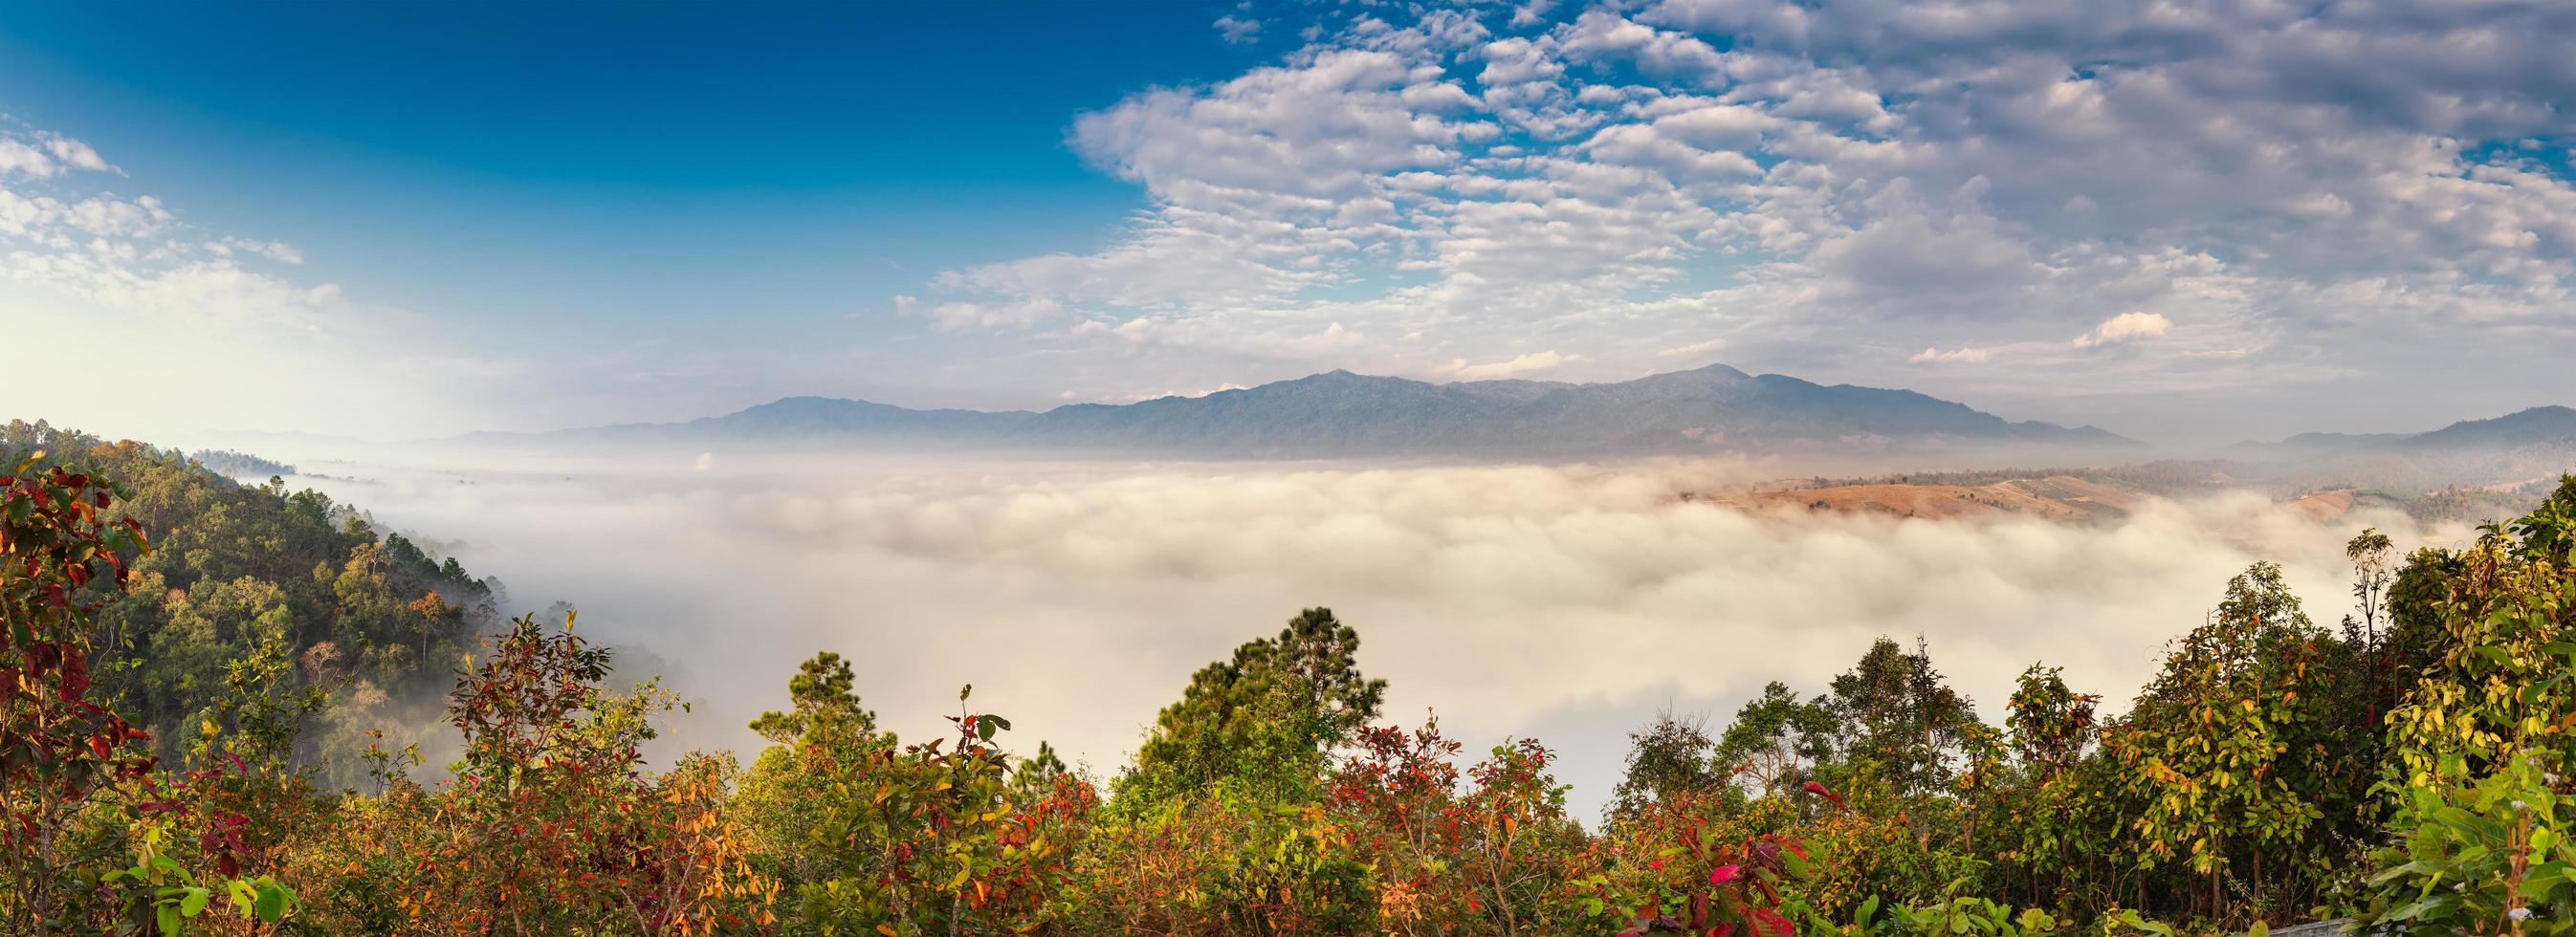 Forest with clouds and mountains photo